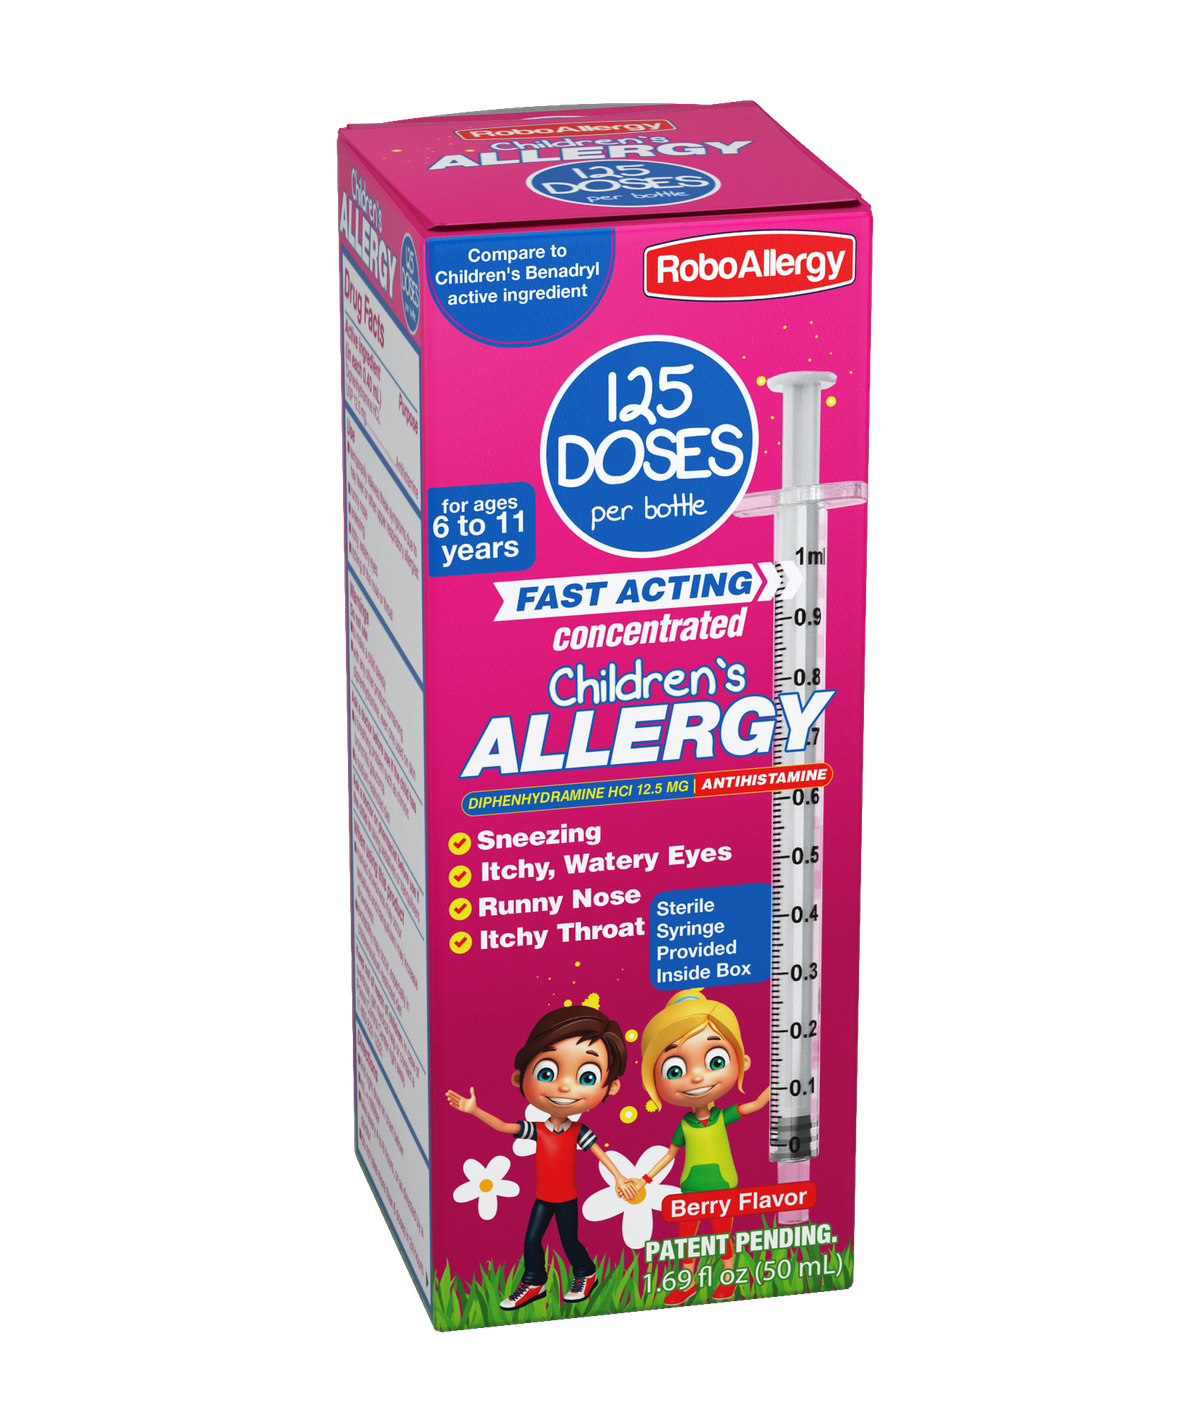 New designs for Allergy Box and bottle